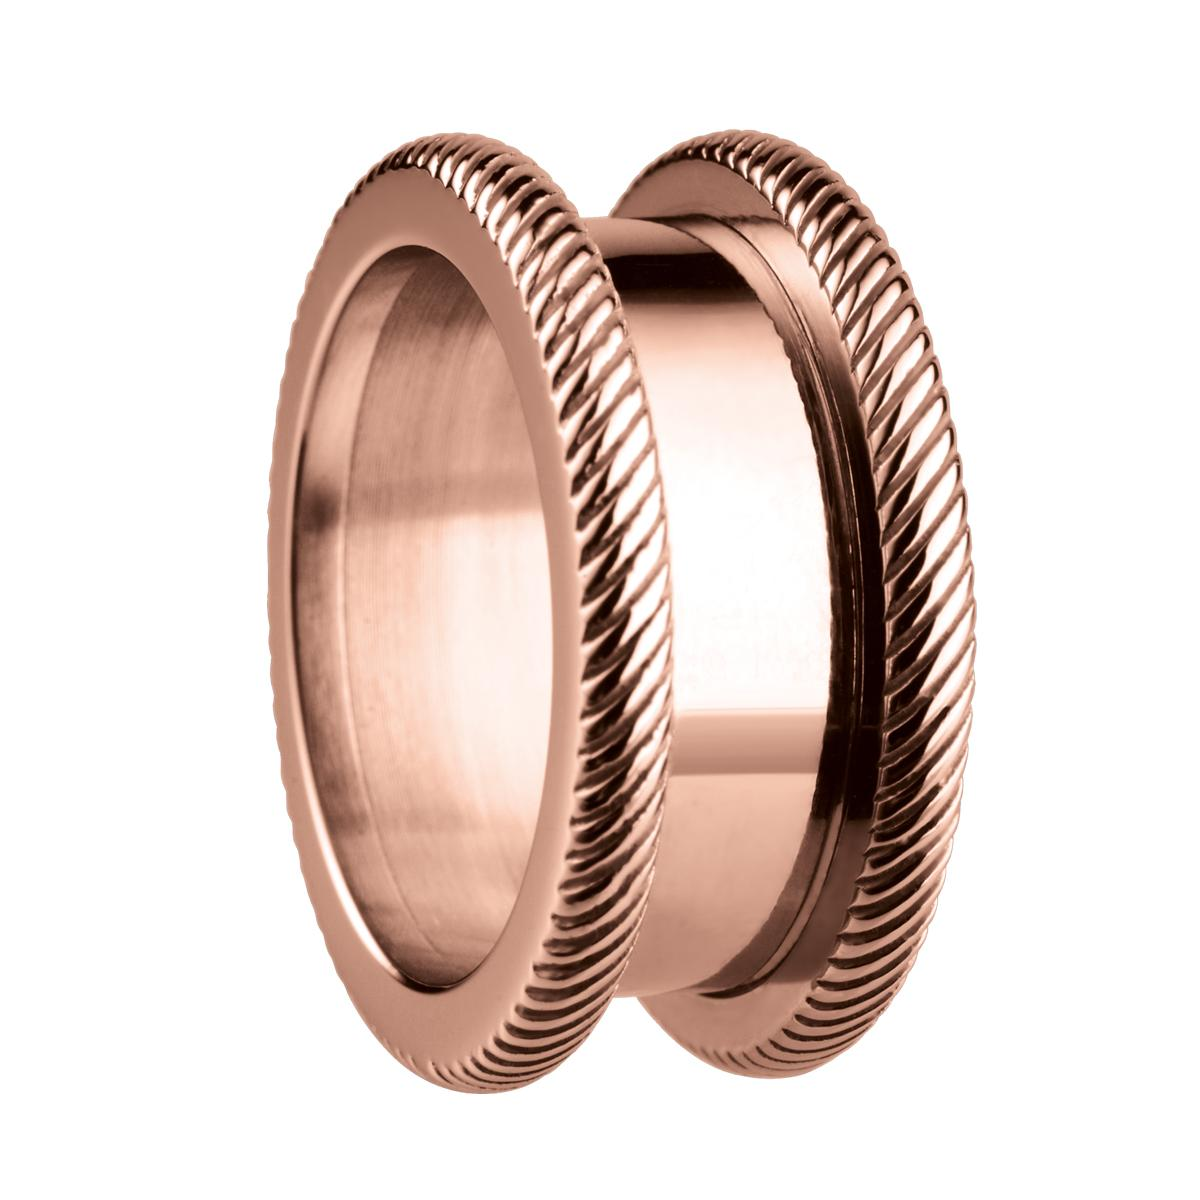 Bering Outer Ring 5213054 1